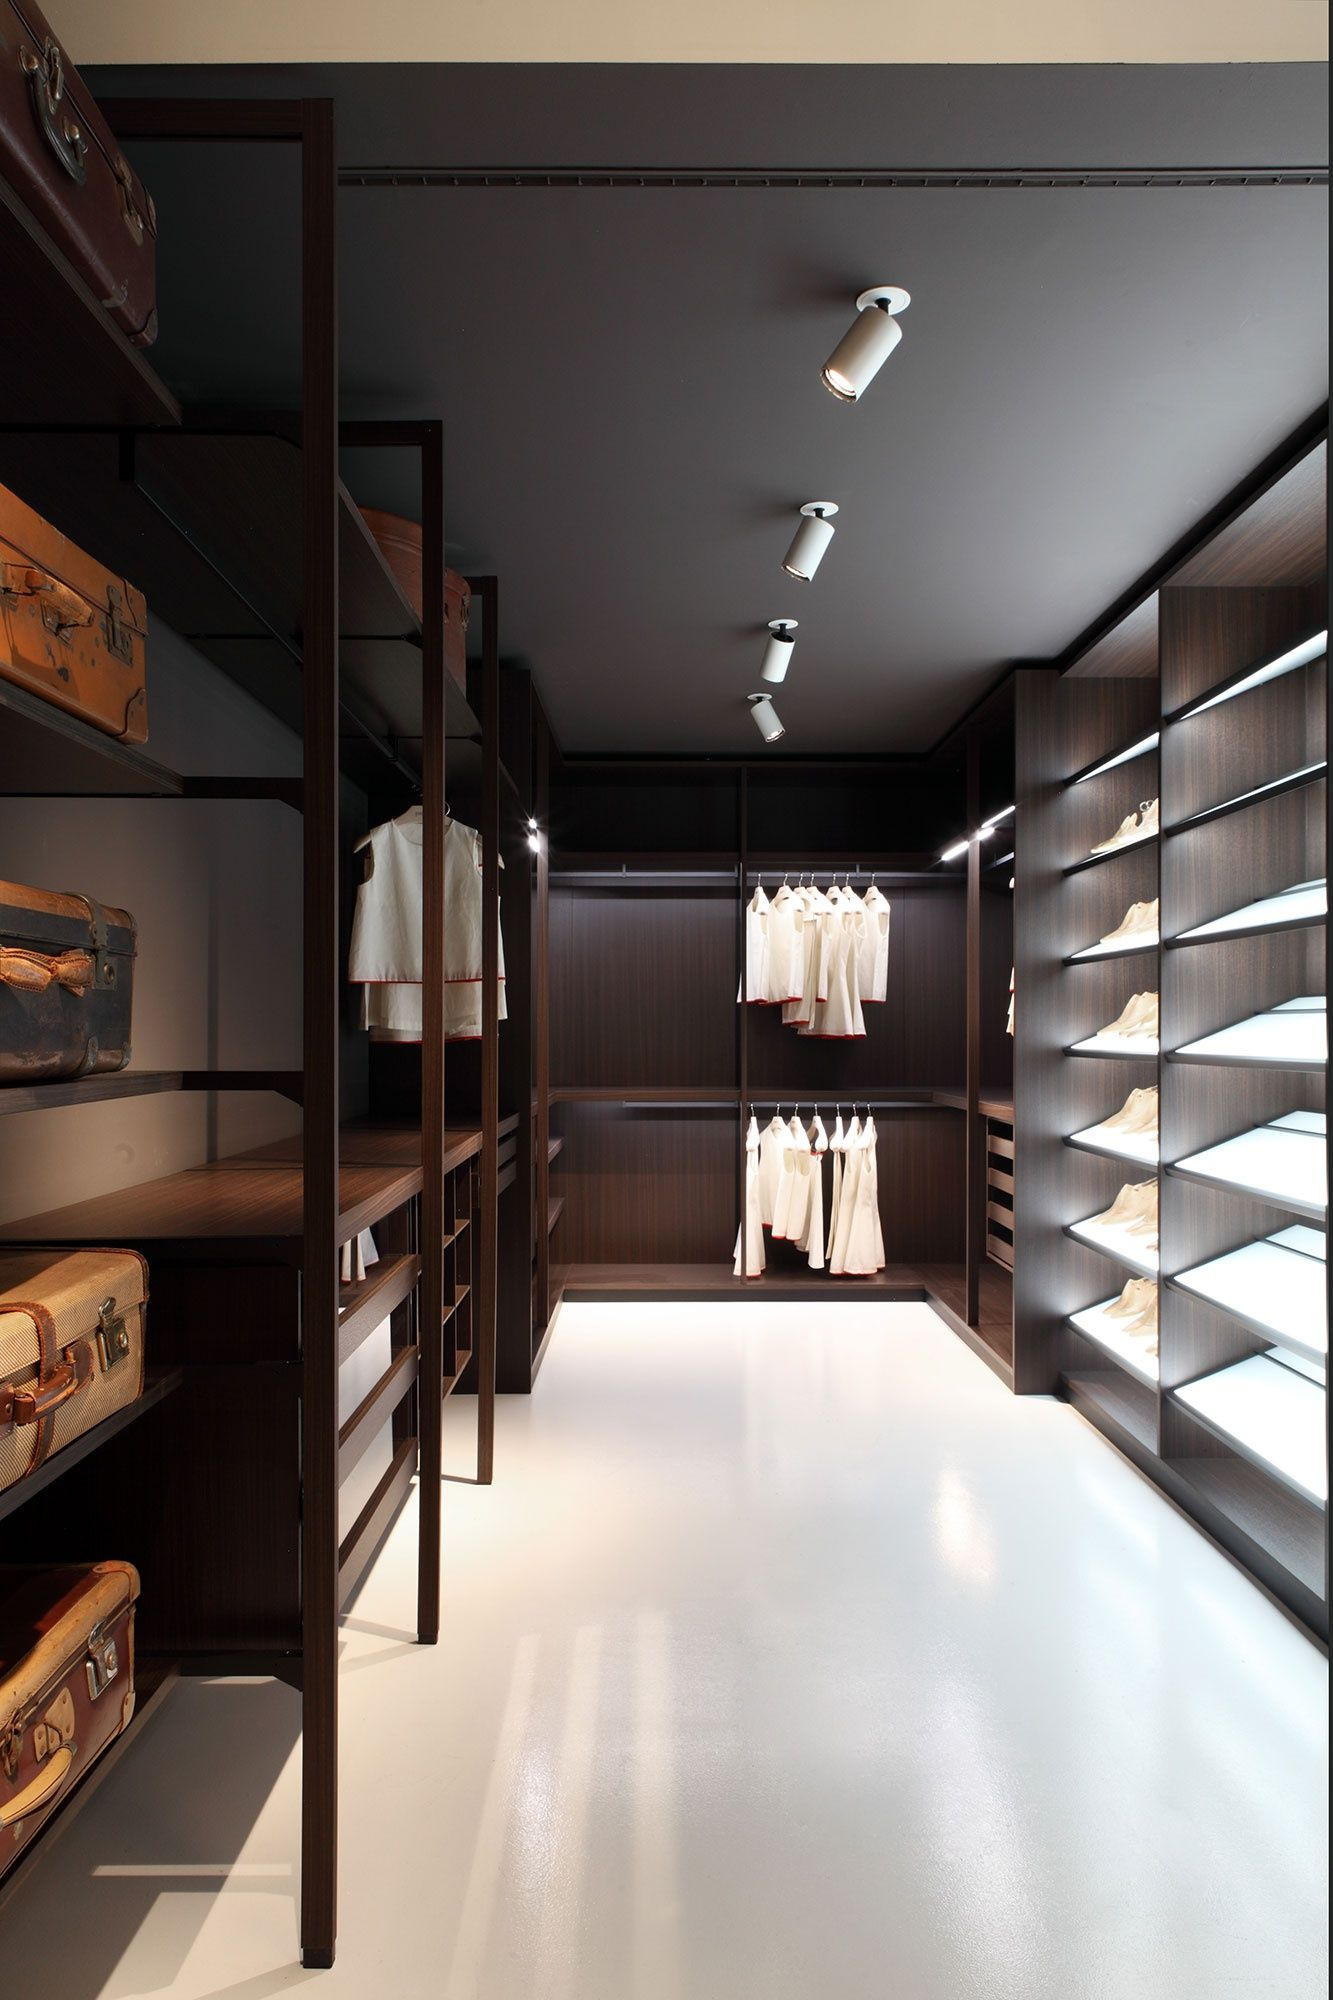 Porro Walkin Closet Systems, Pehaps The Most Flexible In Terms Of The Mix  Of Type And Size. Infinite Possibilities